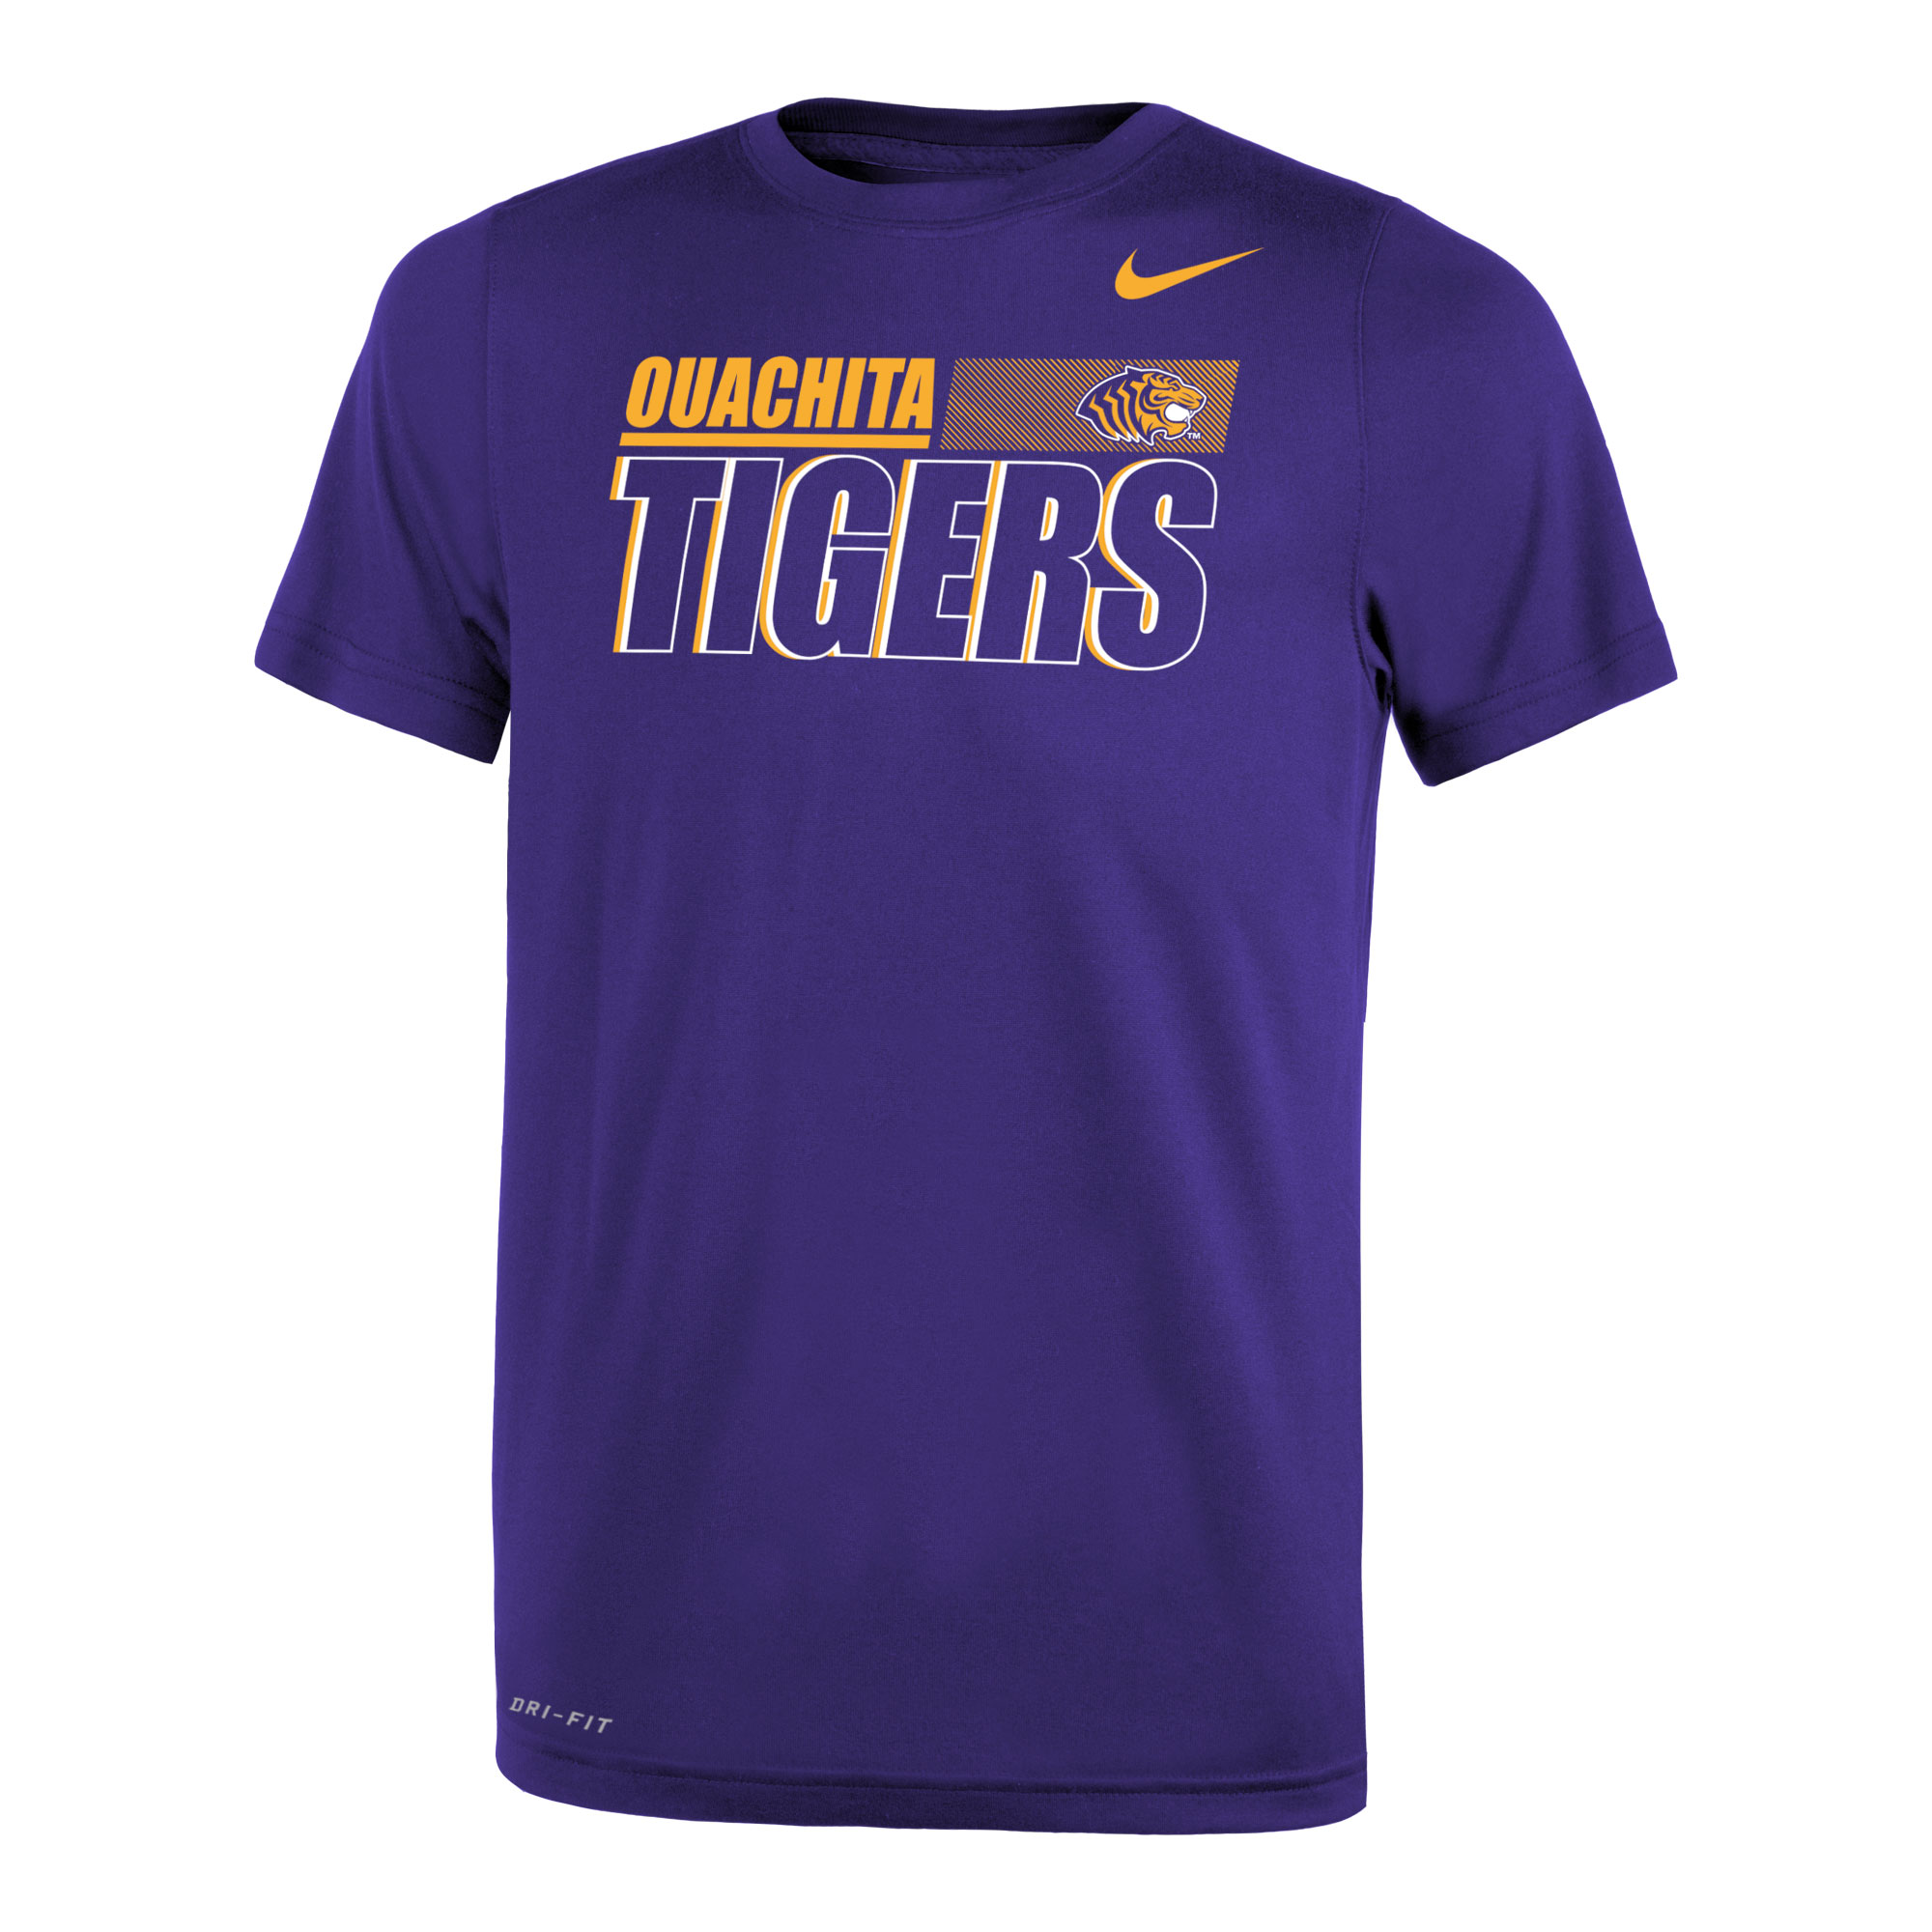 OUACHITA TIGERS NIKE LEGEND YOUTH SS TEE